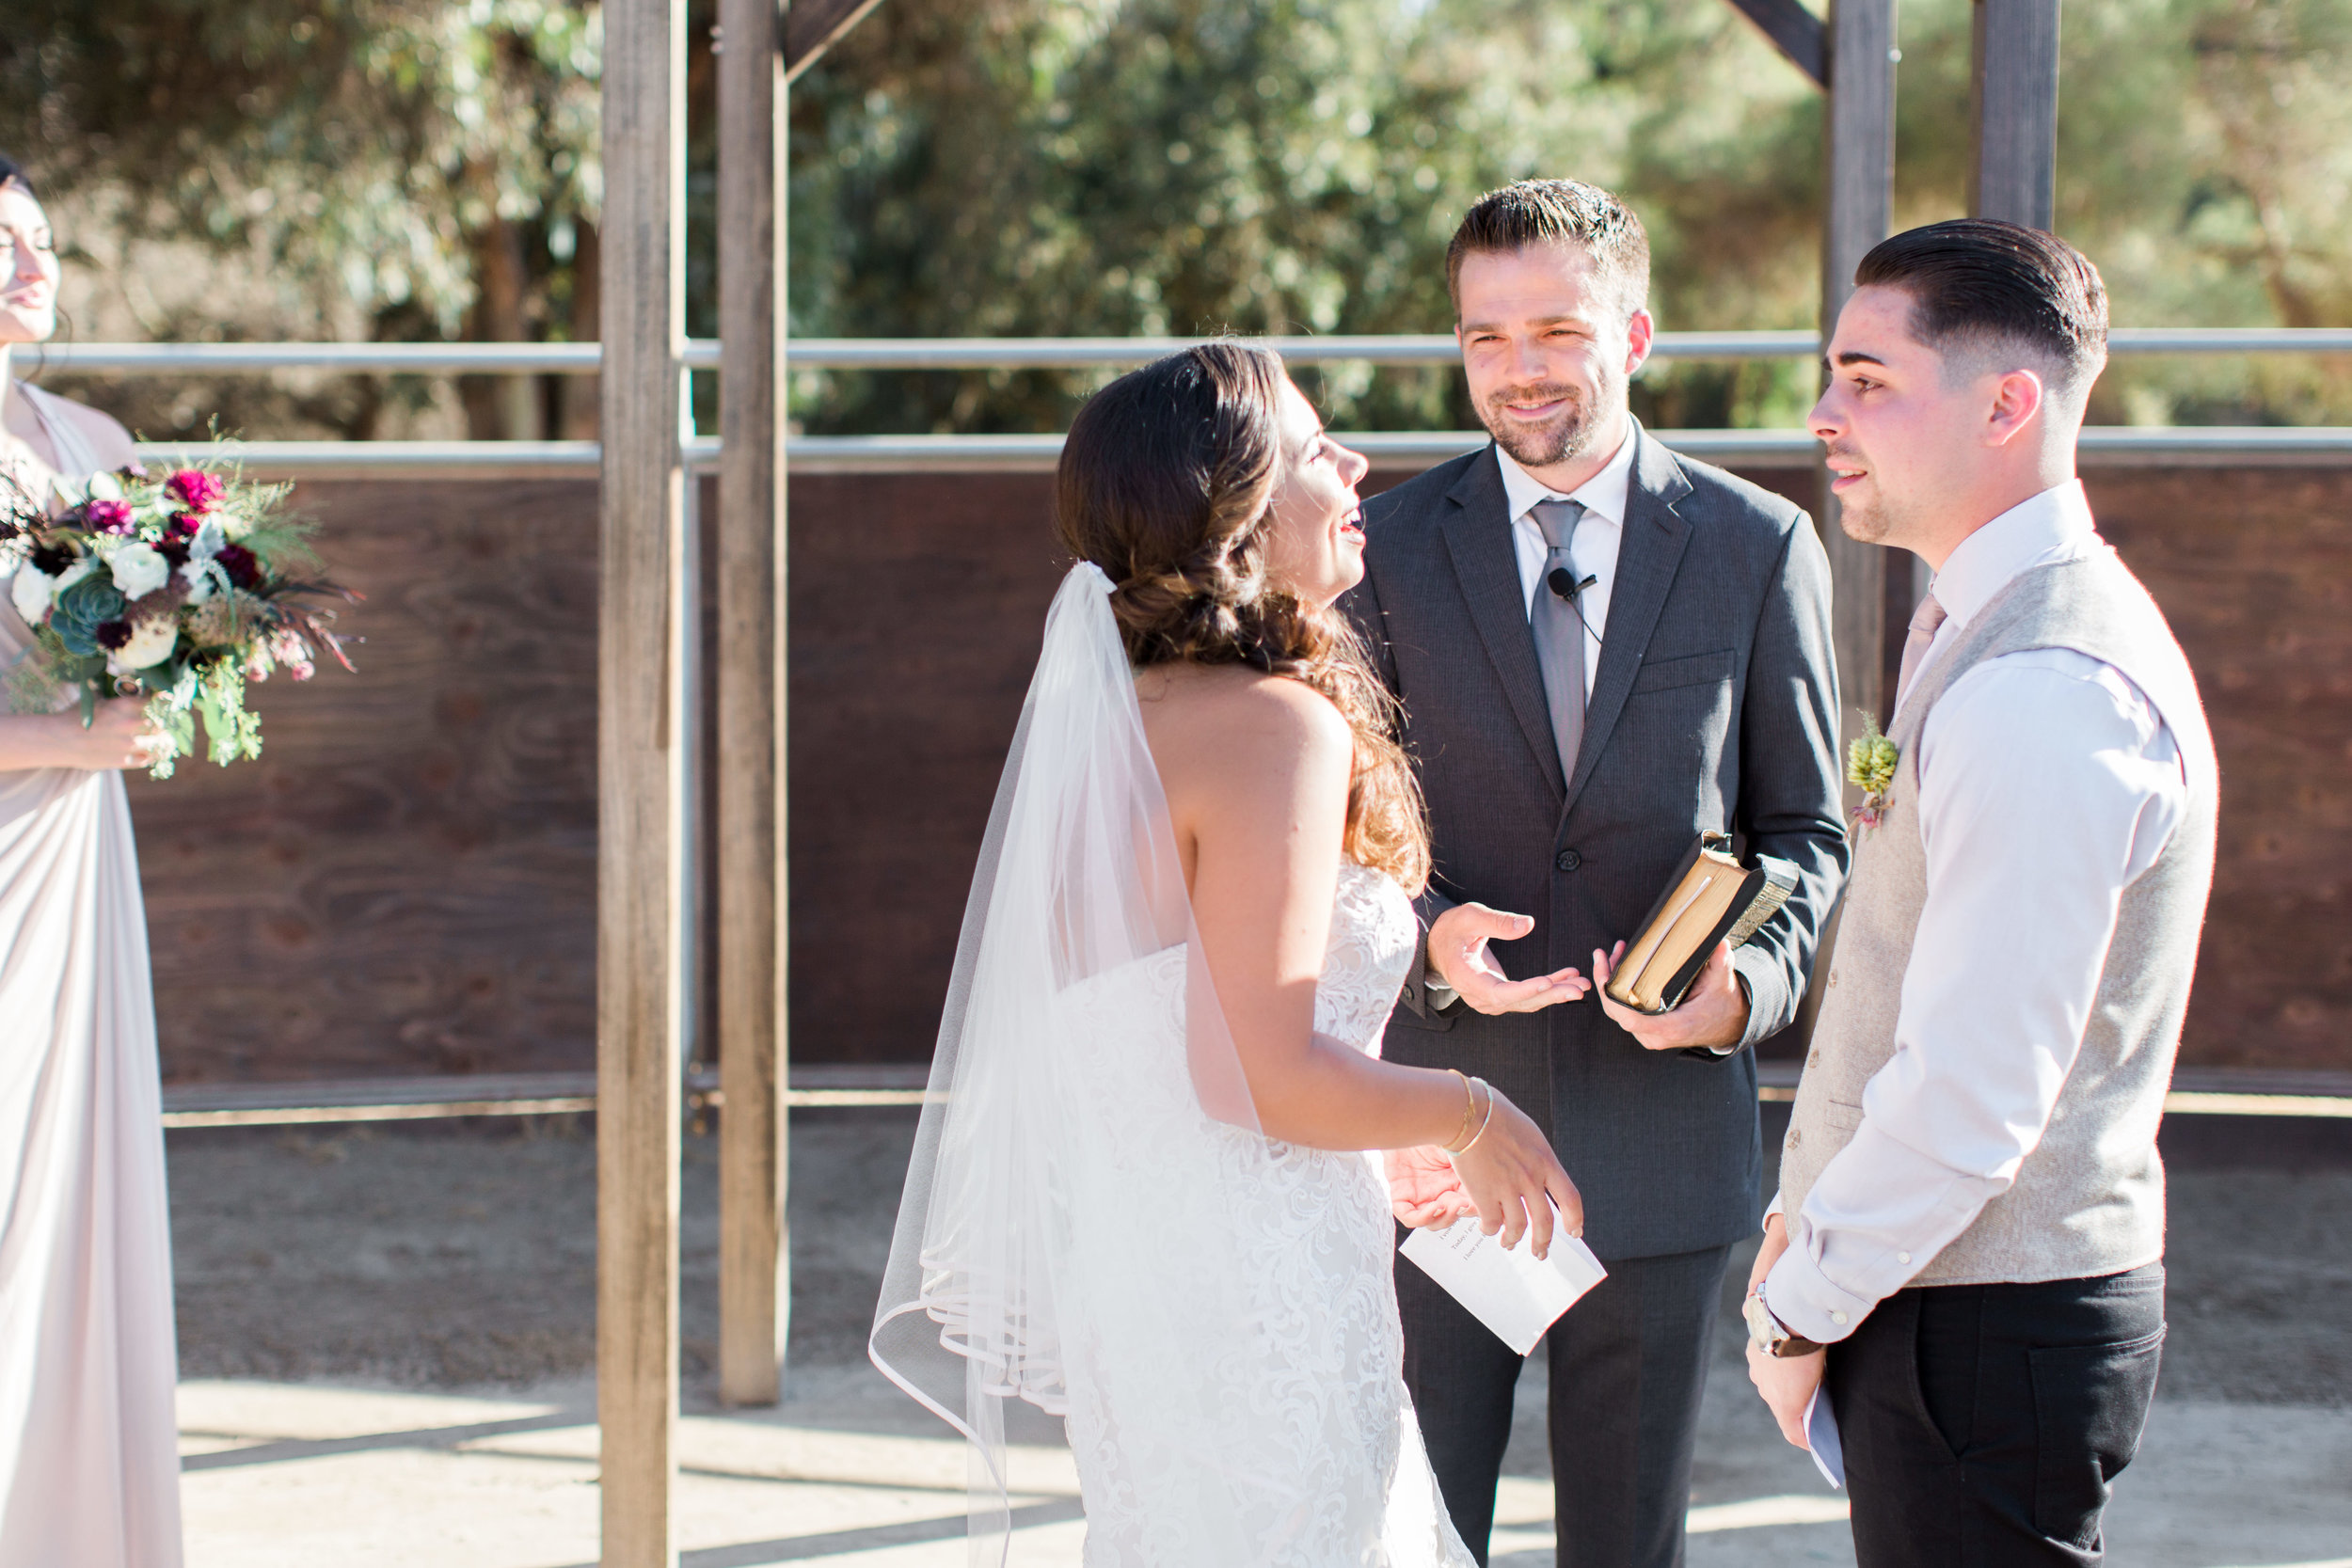 rustic-inspired-ranch-wedding-livermore-california-38.jpg